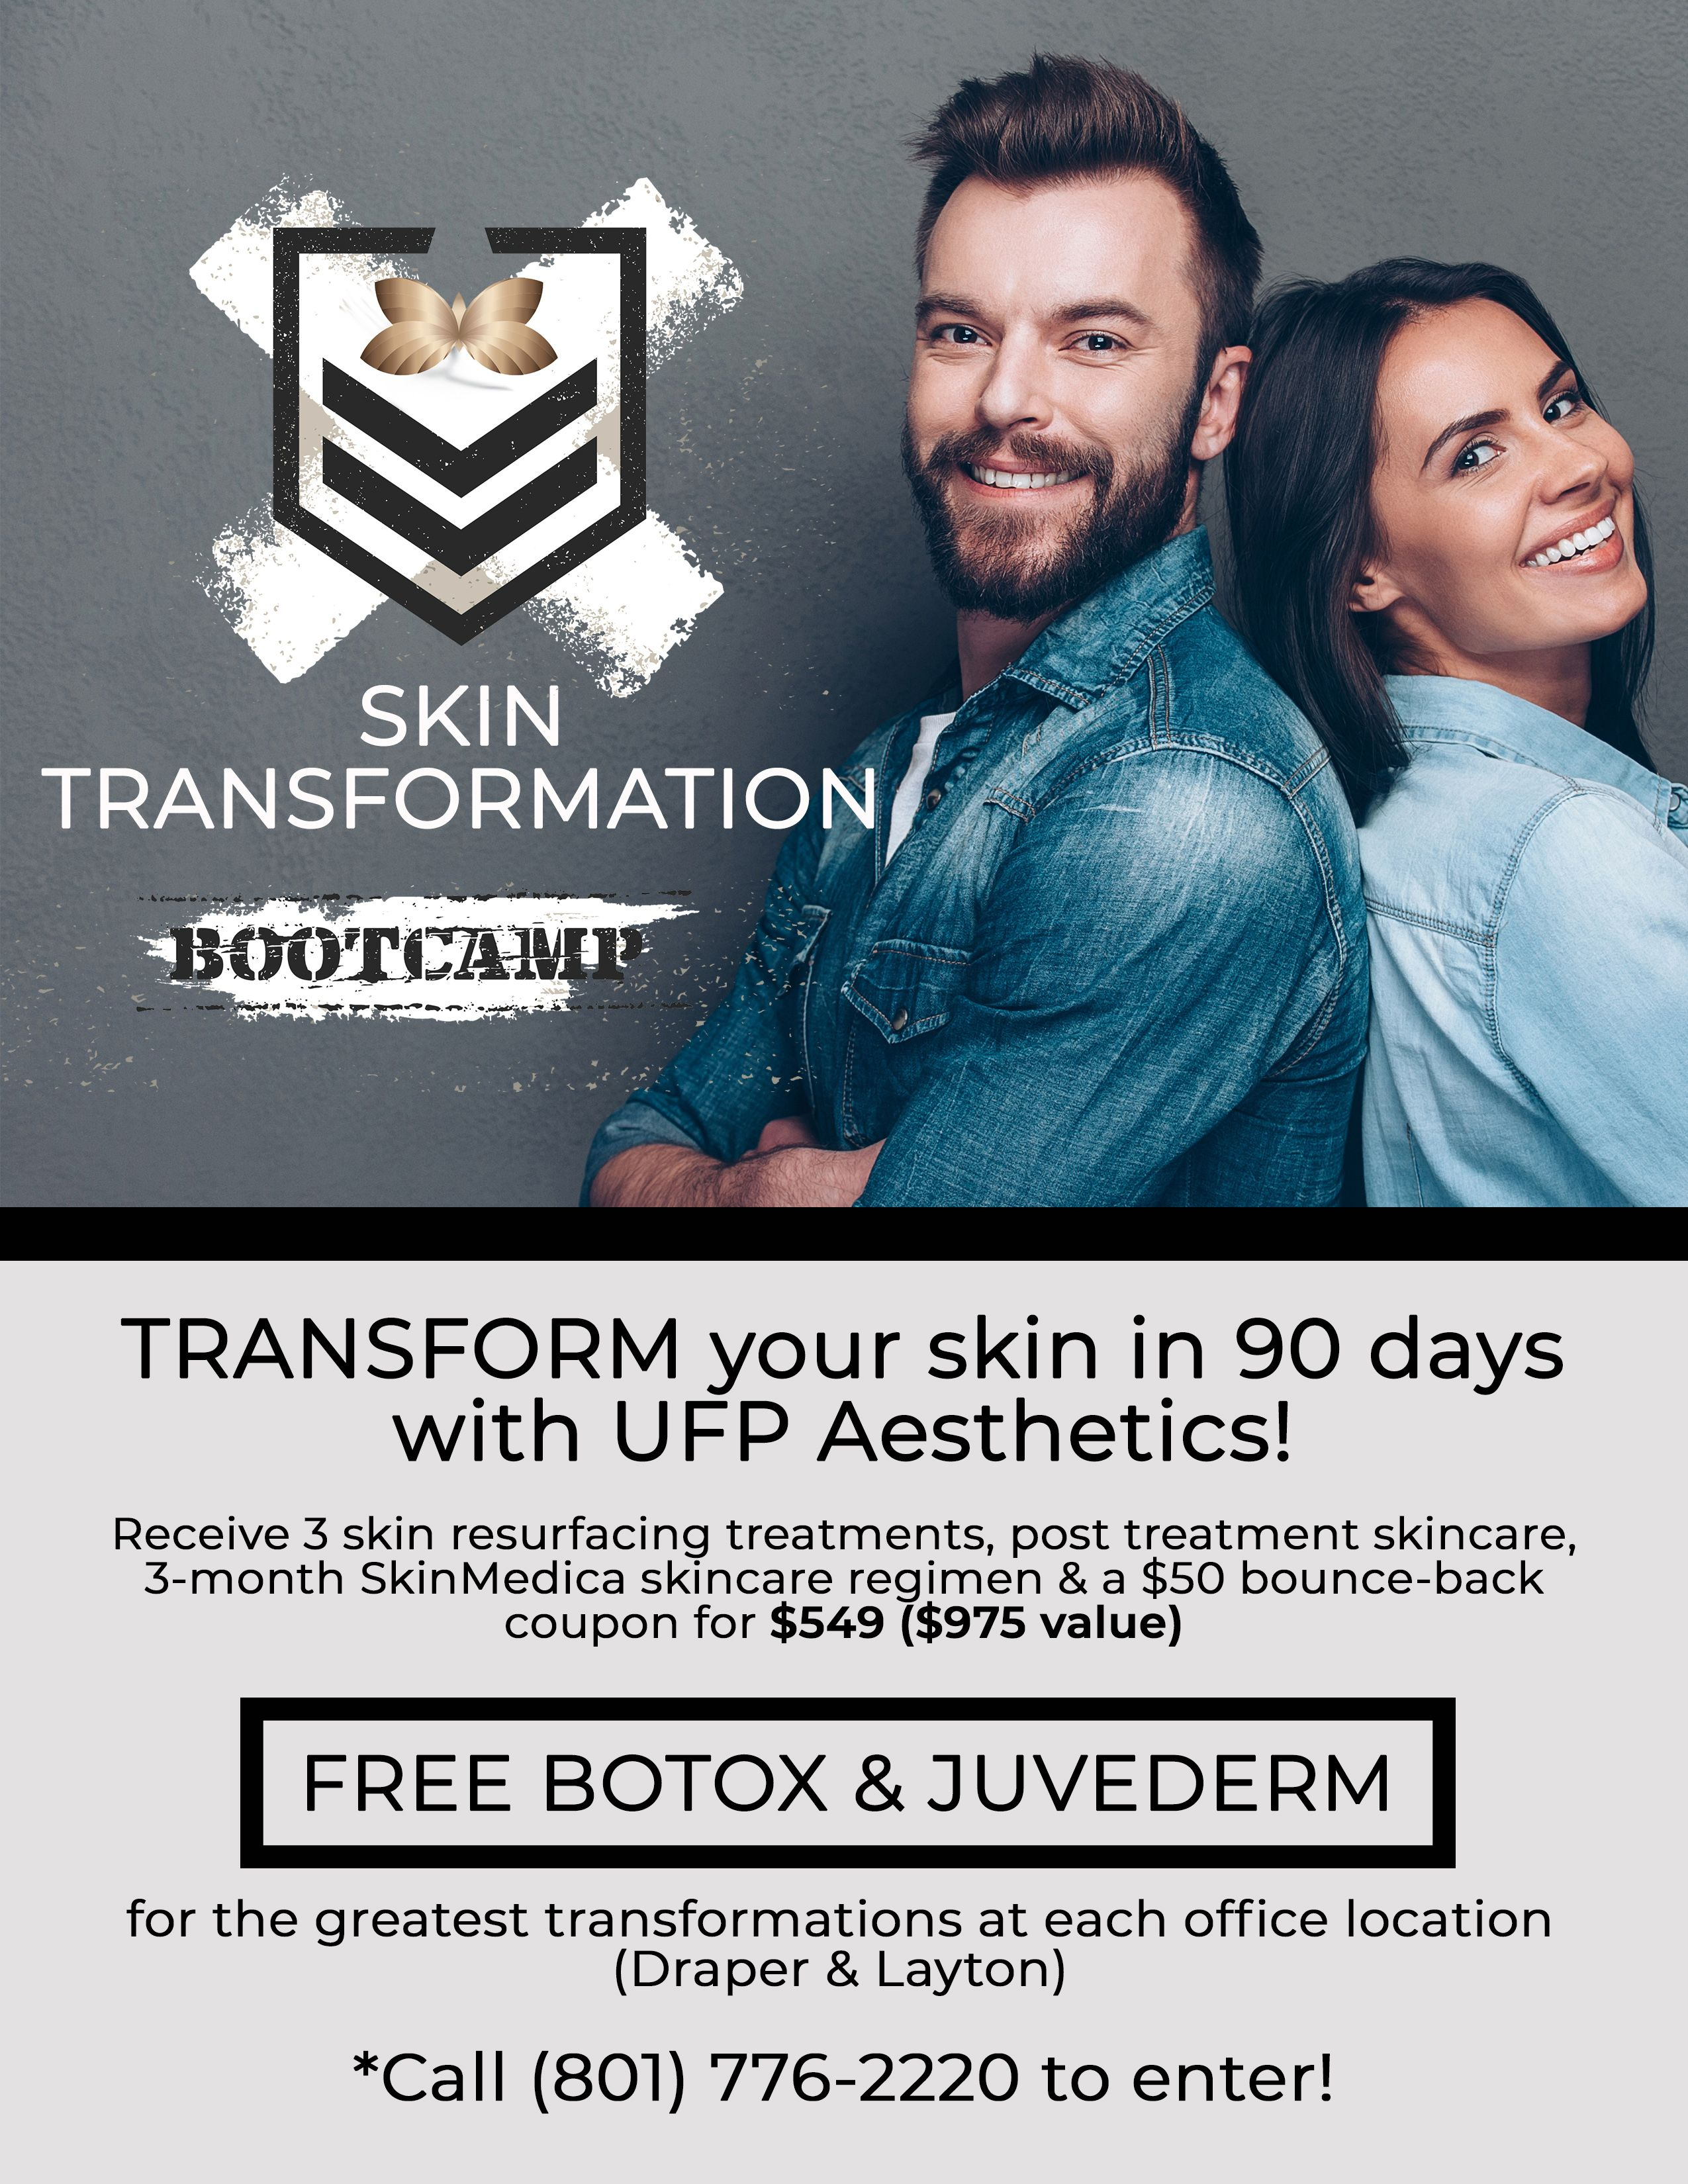 Skin Transformation Bootcamp At UFP Aesthetics 3 month skin